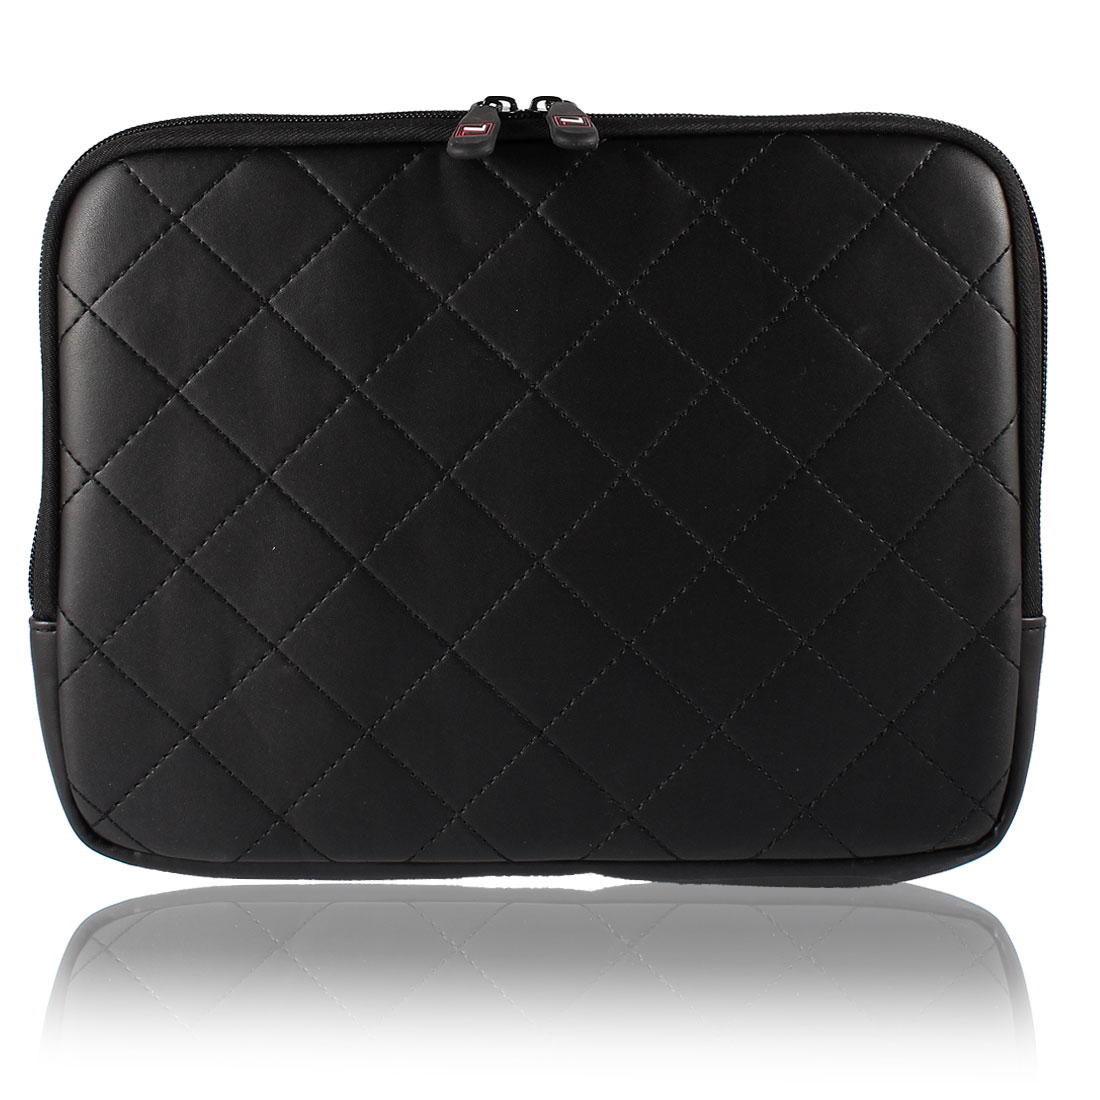 "10"" 10.1"" 10.2"" Black Faux Leather Laptop Sleeve Bag Case + Zipper"